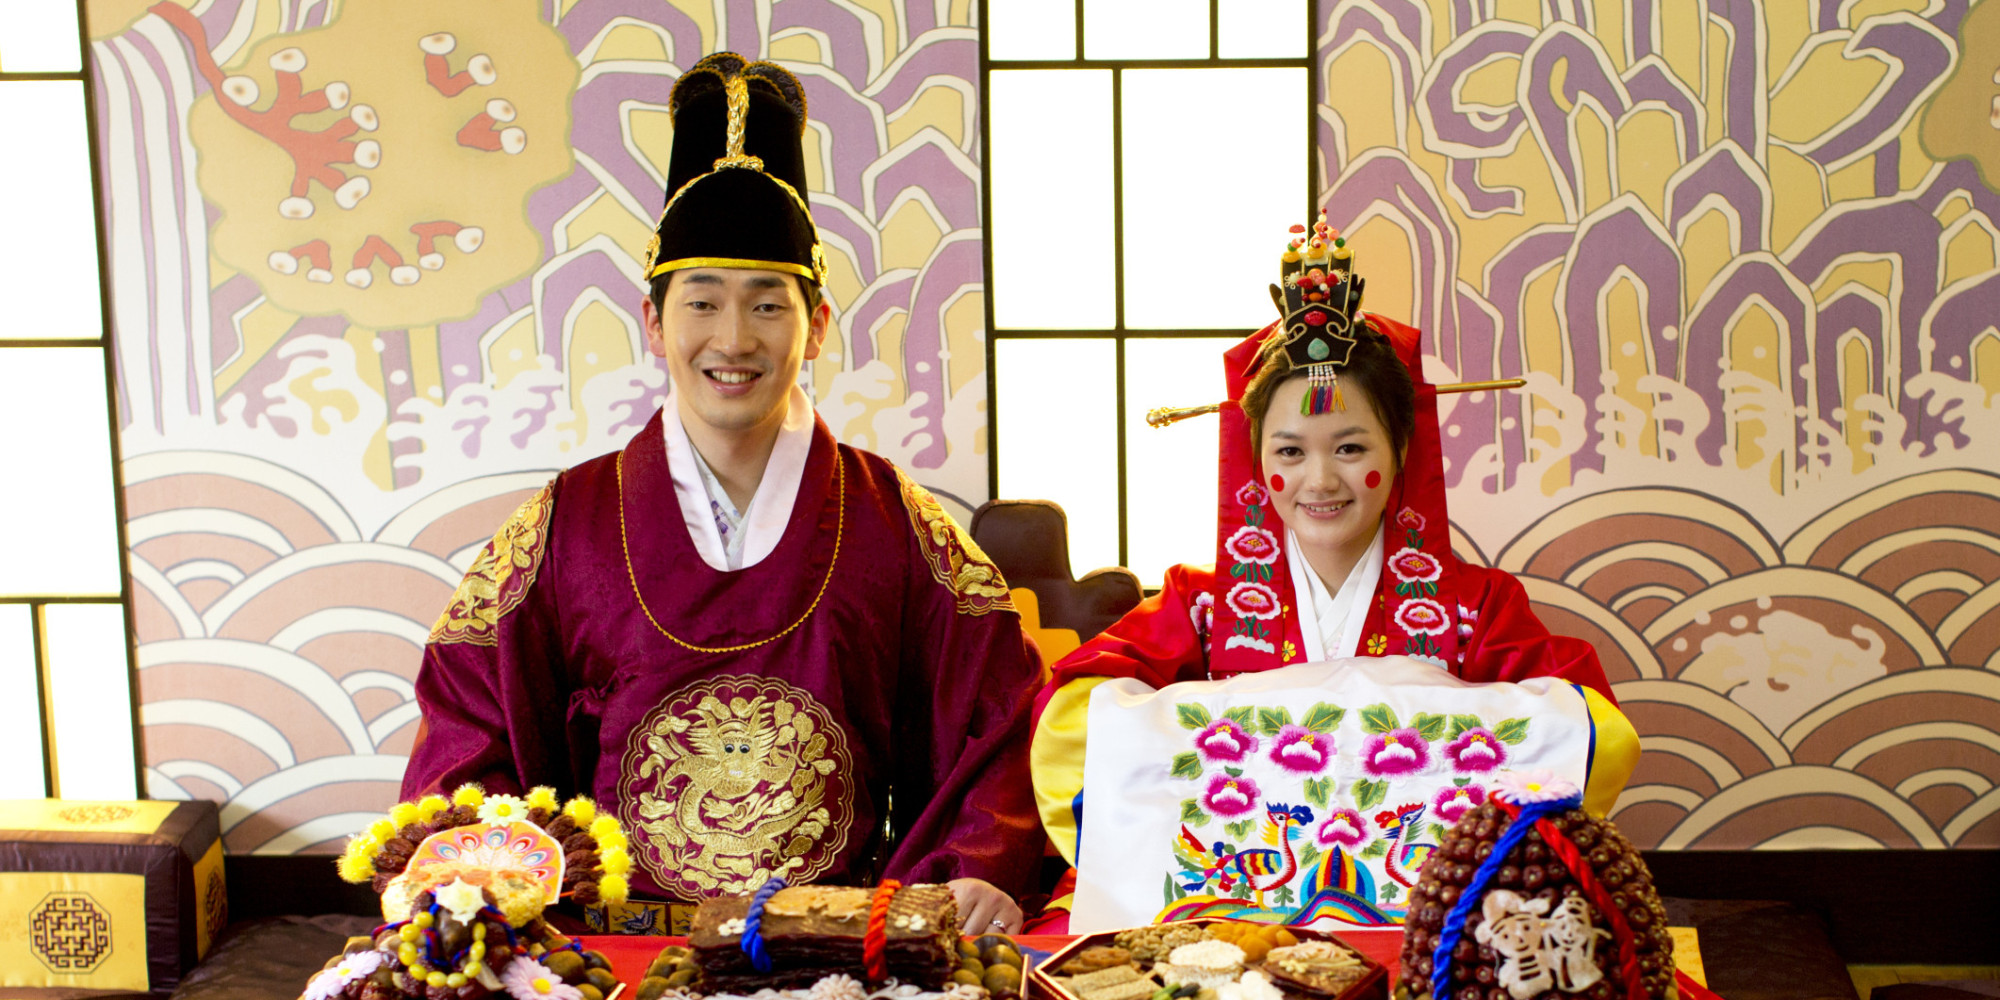 korean wedding.jpg